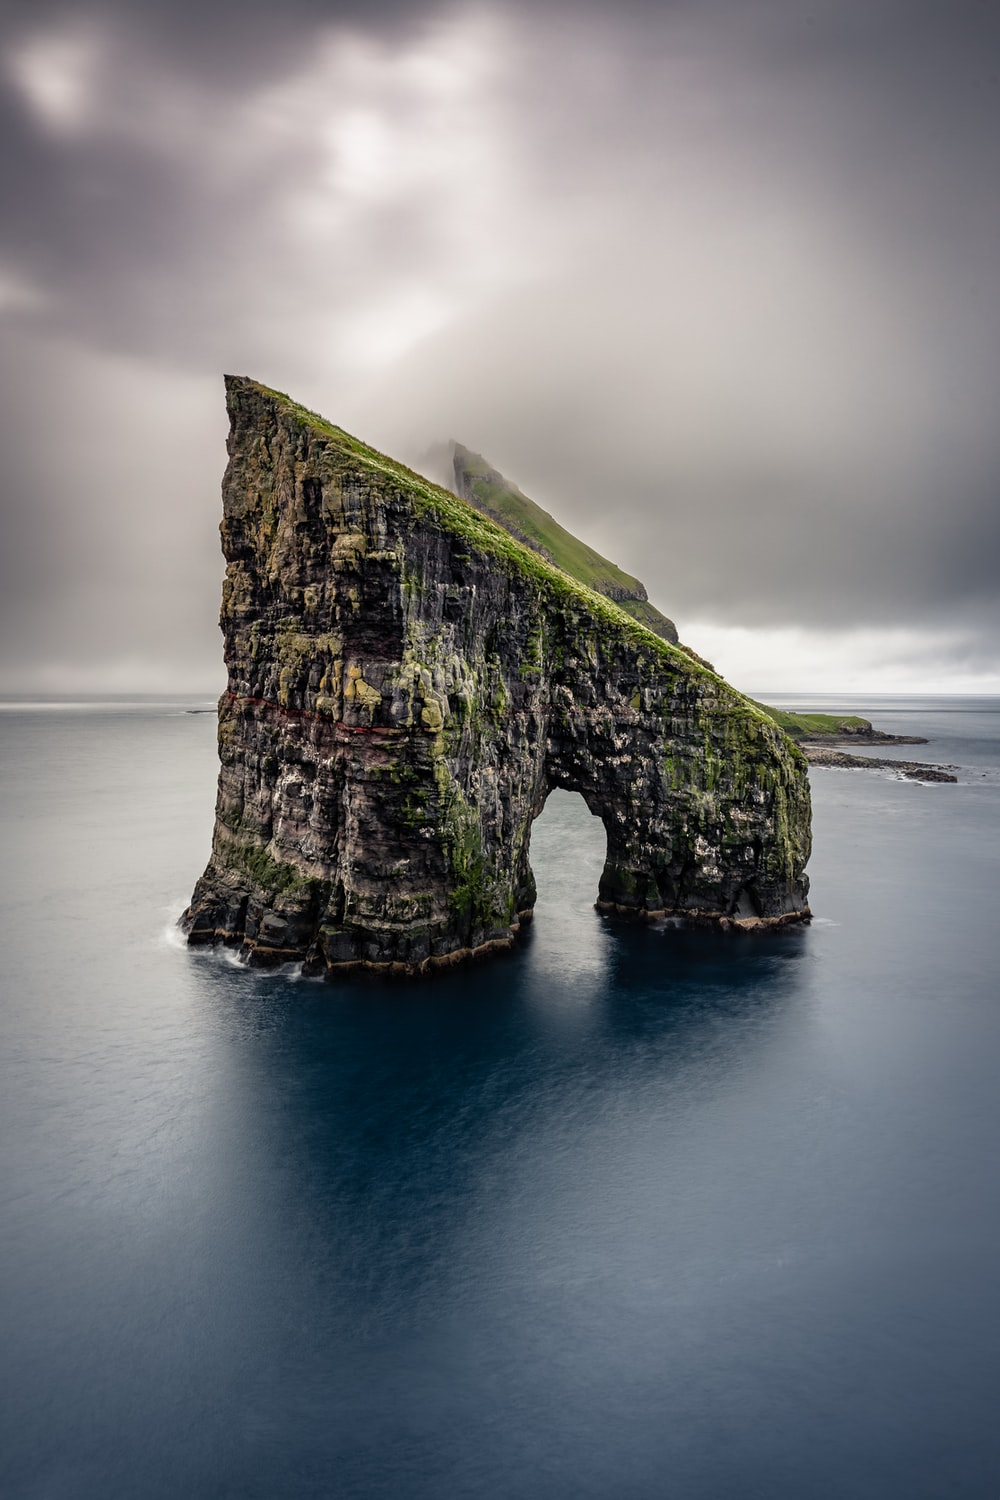 grey and green islet during cloudy day